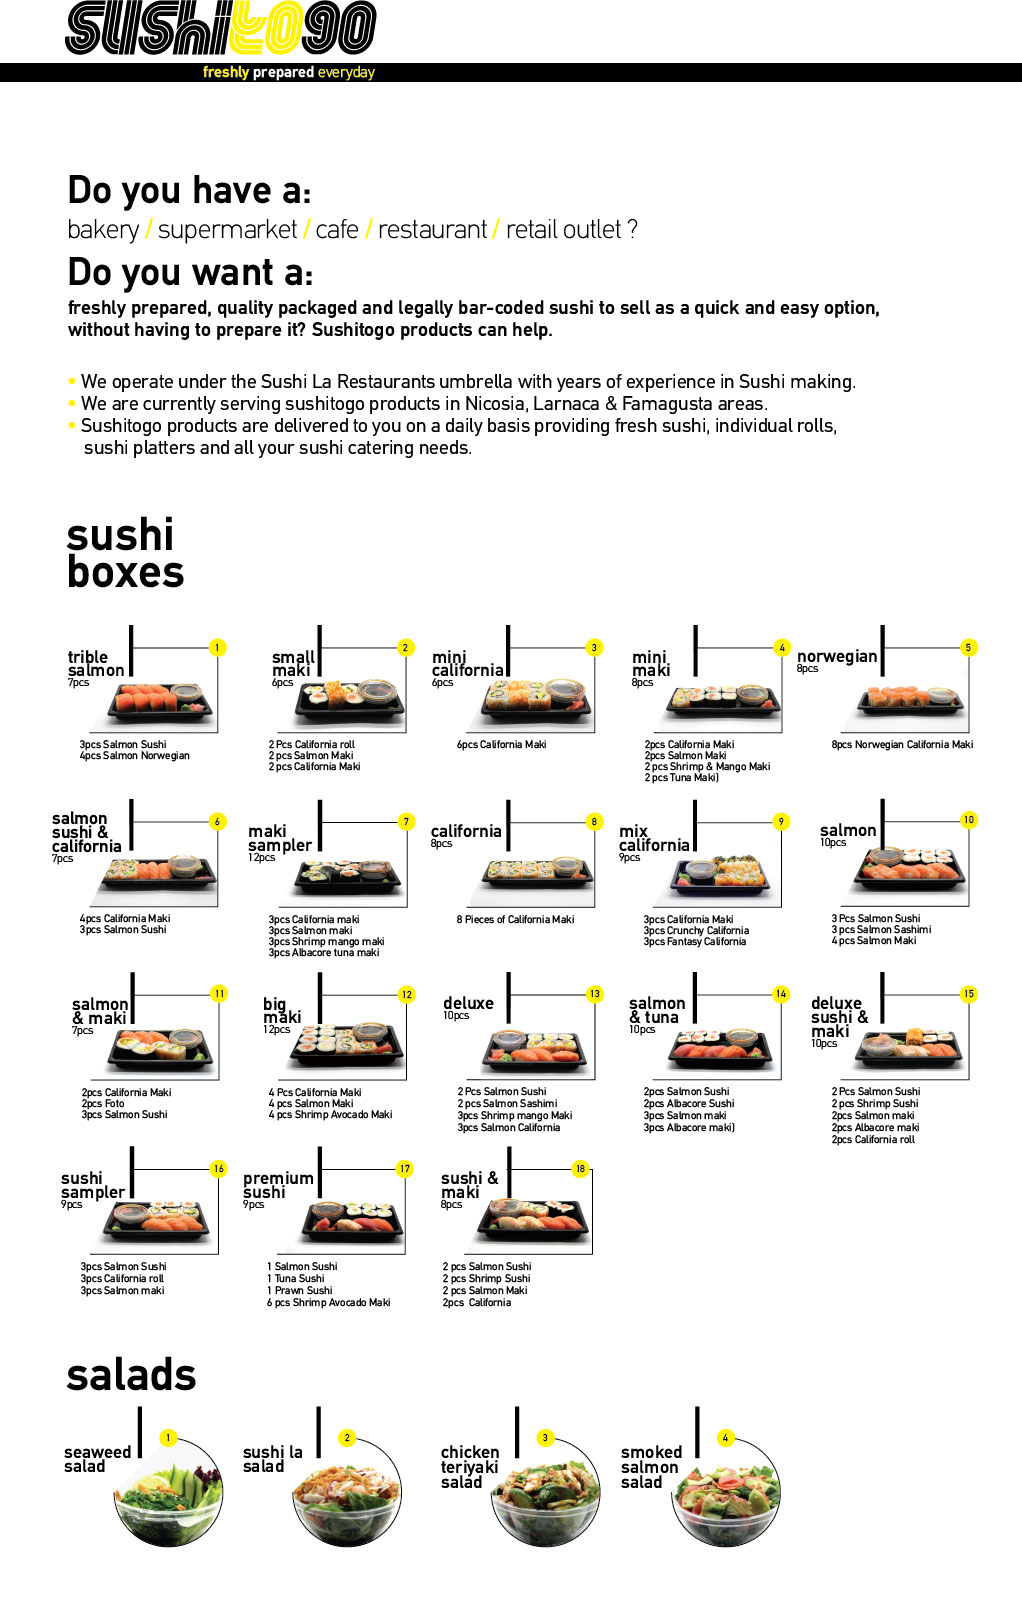 Sushi La Bar and Grill Restaurant in Cyprus - Sushi To Go